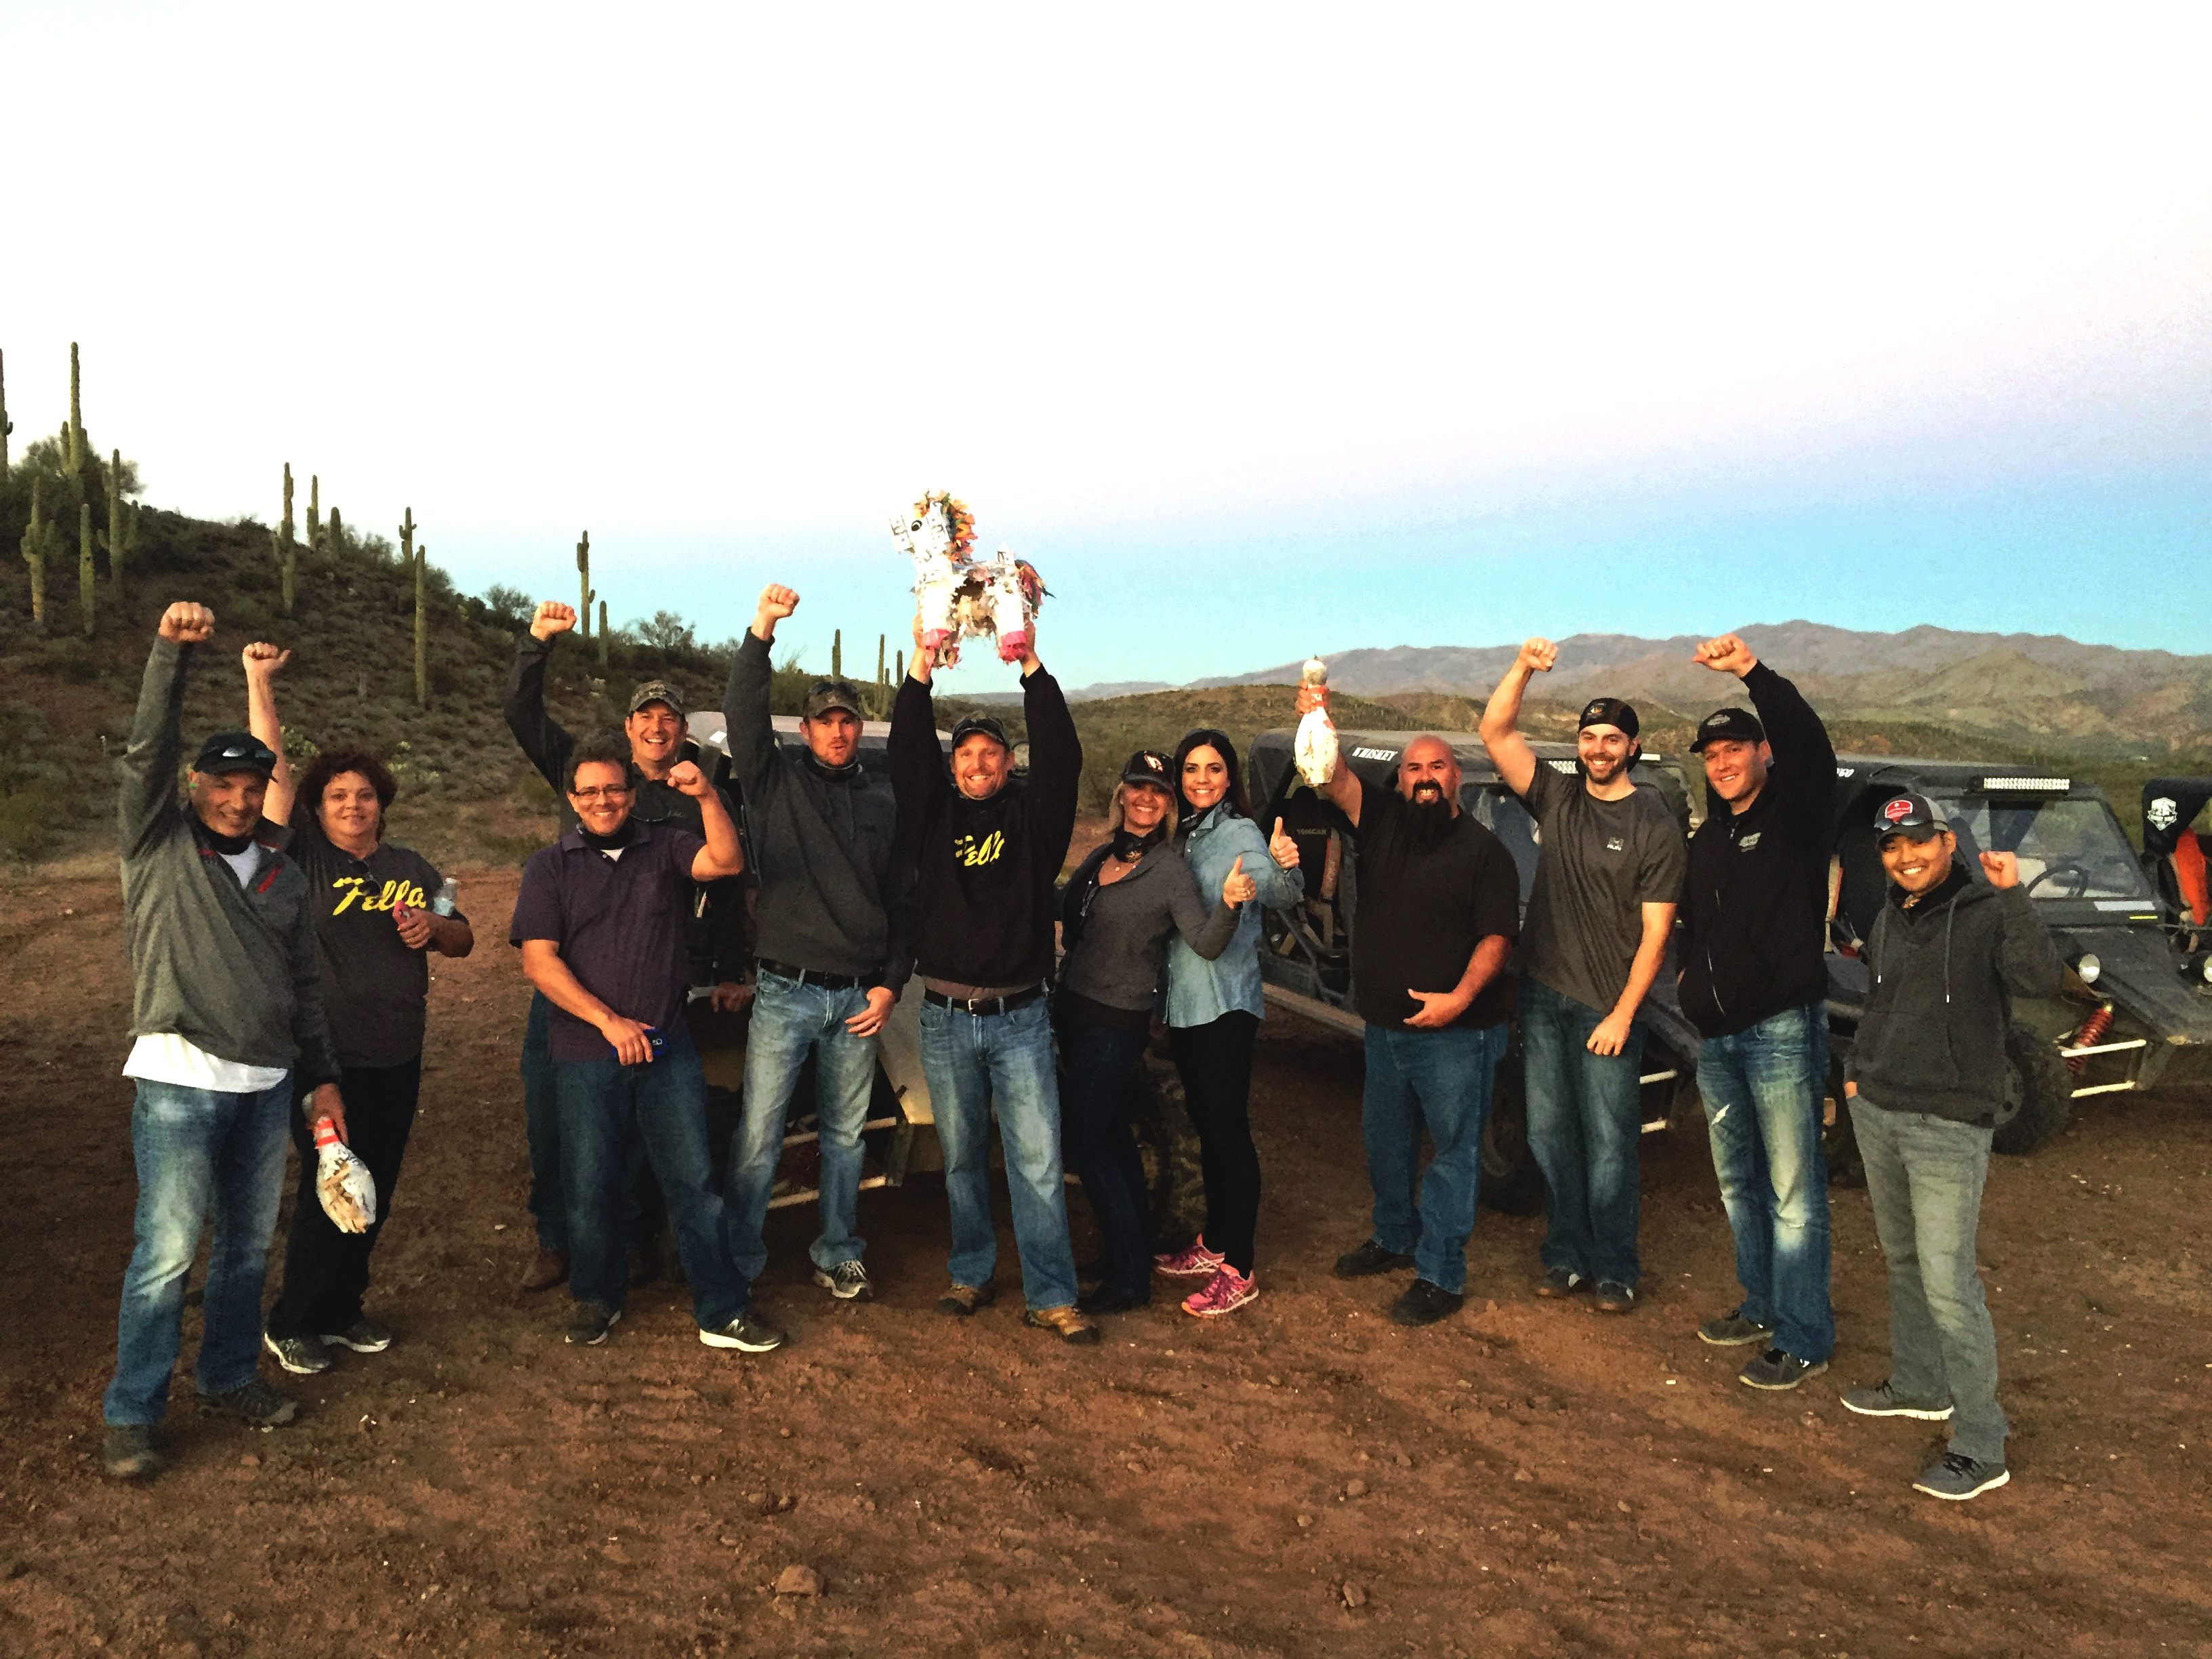 Corporate and Group Team Building Activities in Scottsdale, Phoenix